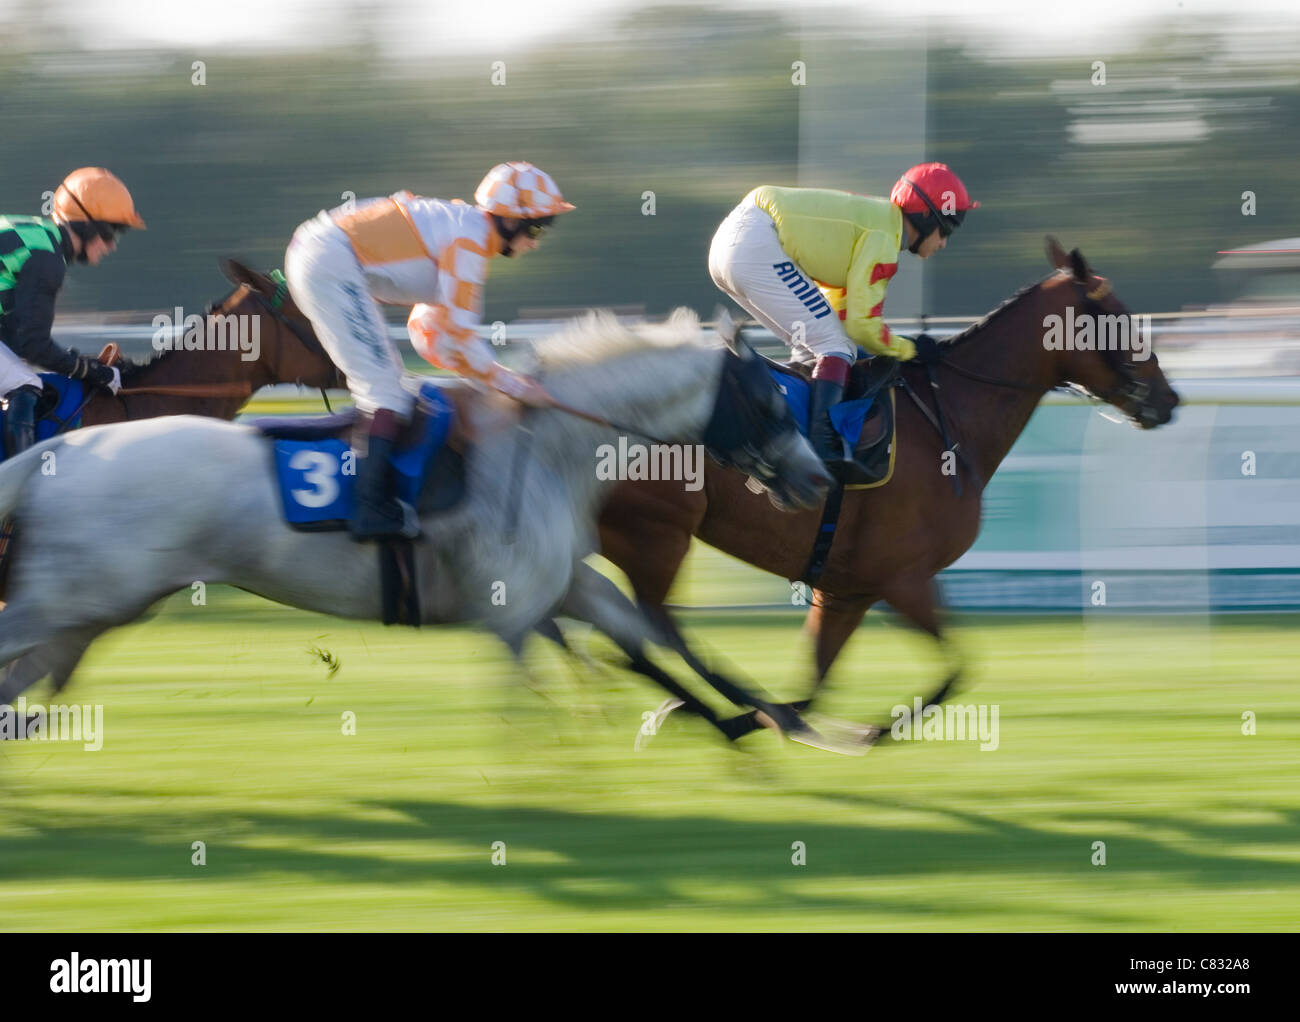 Groupe de course de chevaux course de chevaux UK Photo Stock